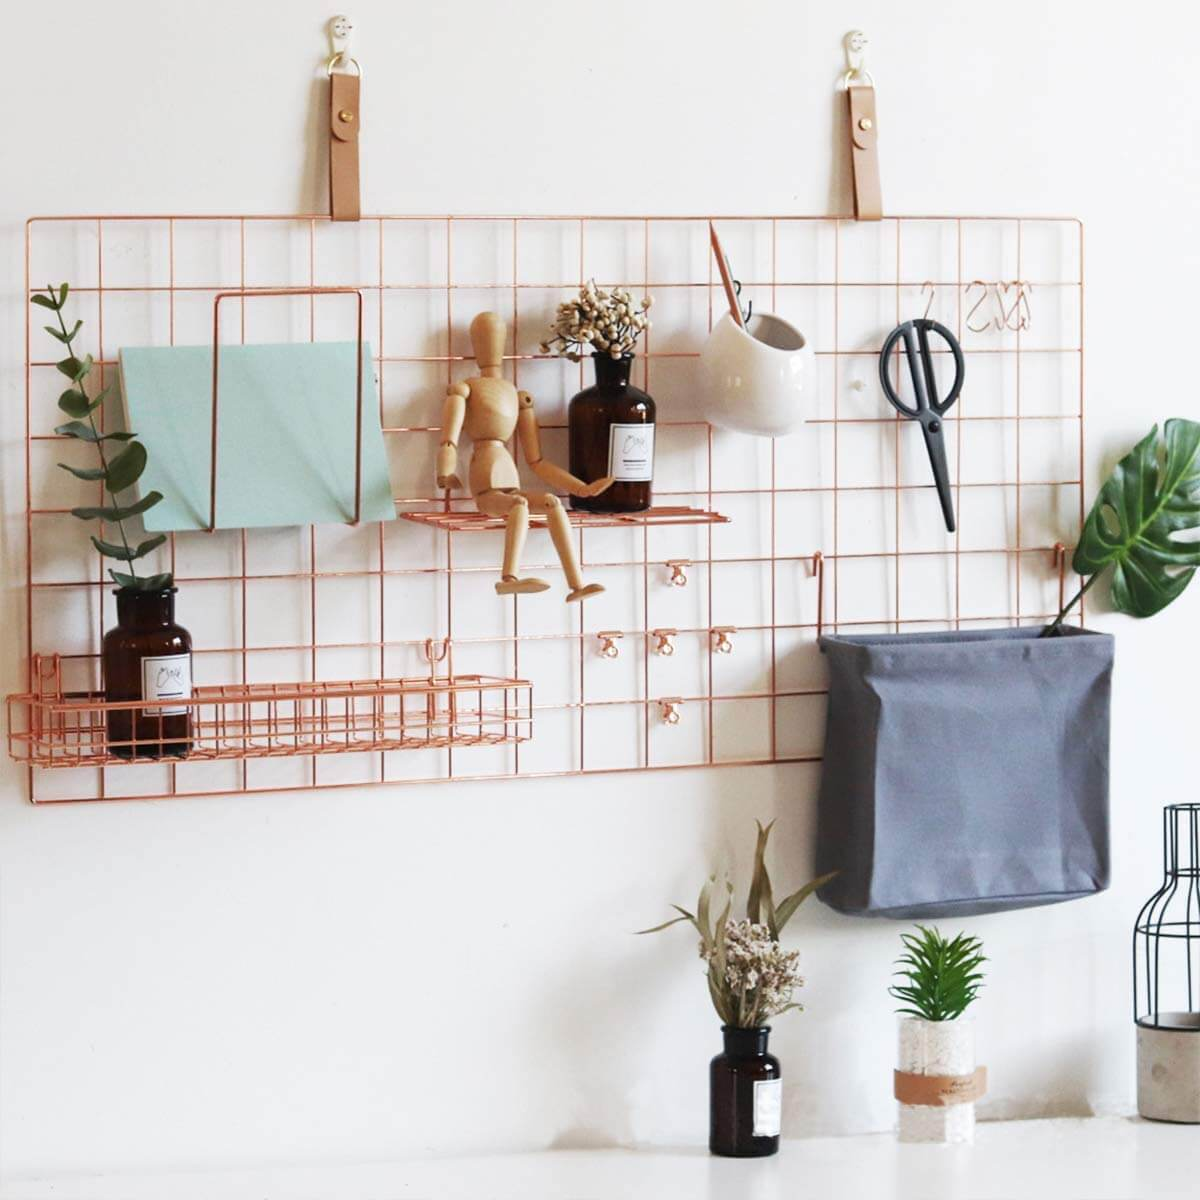 rose gold wall panel with random things as an idea of how to get organized